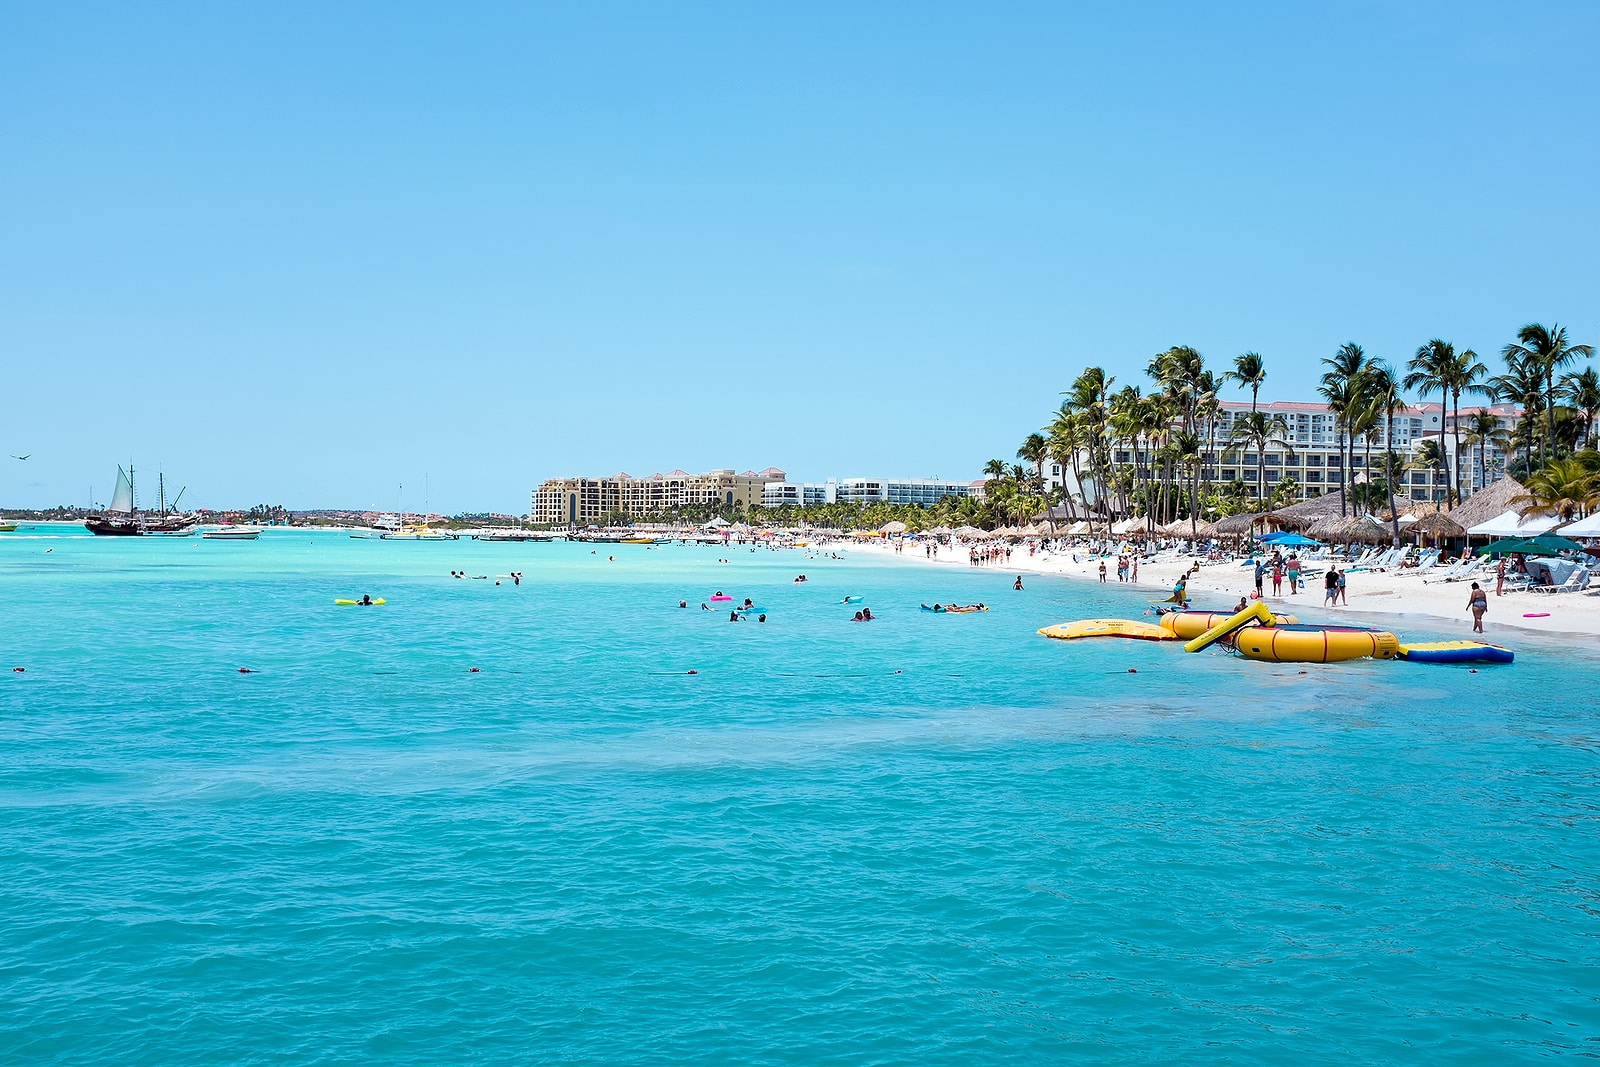 Palm Beach on Aruba island in the Caribbean Sea